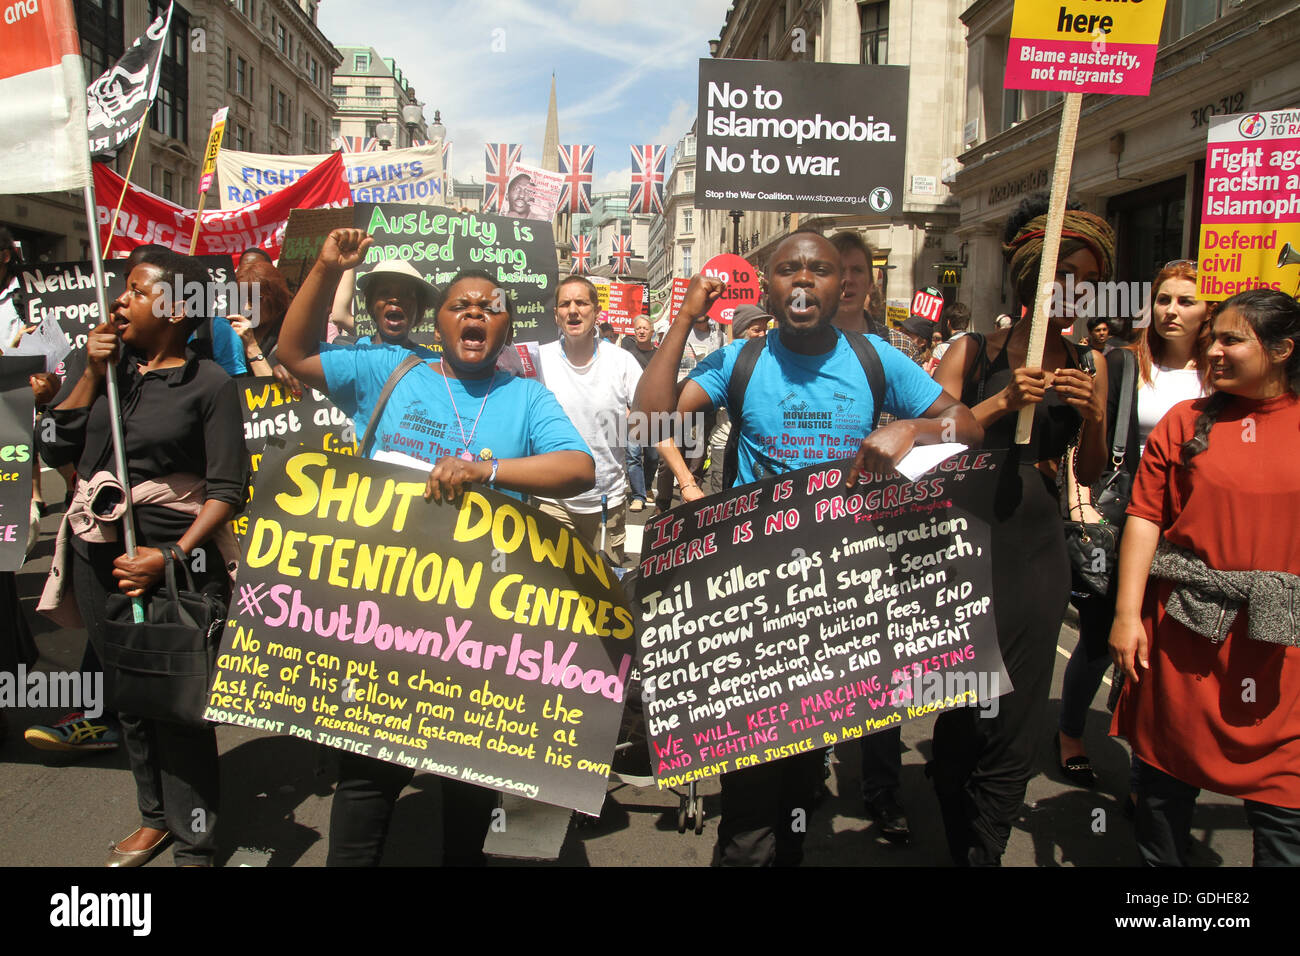 London, UK. 16th July, 2016: Movement of Justice members seen taking part in the People's demonstration. Hundreds - Stock Image